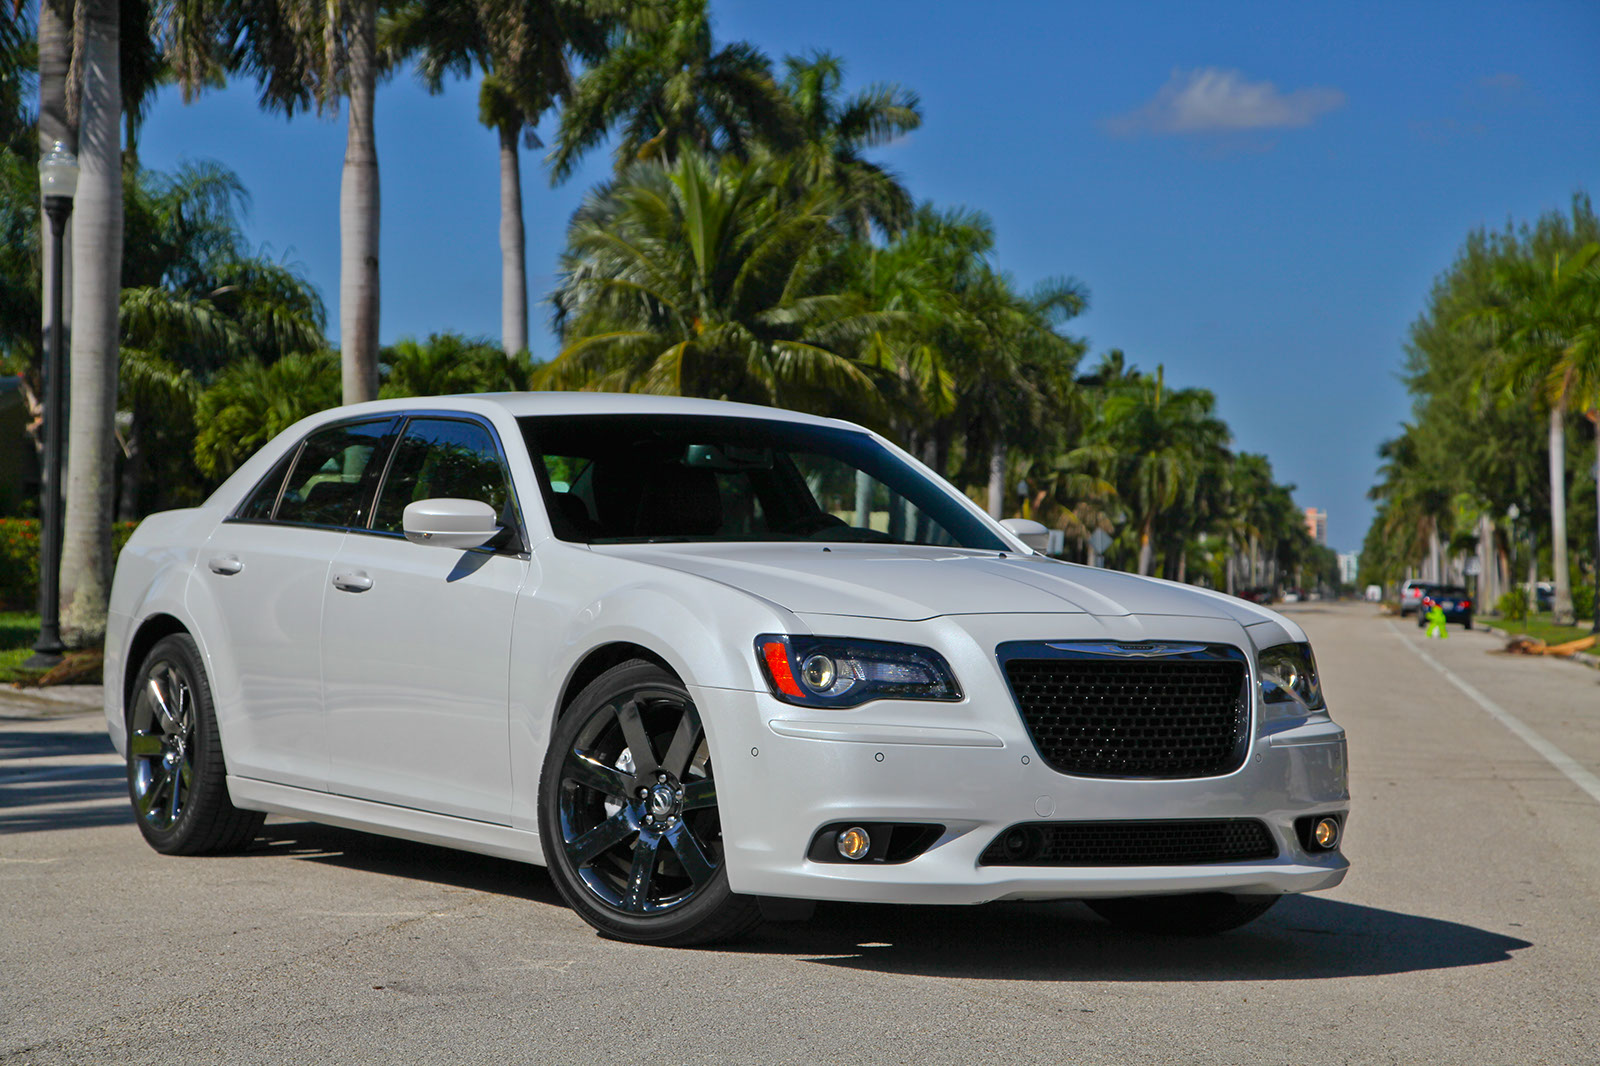 2013 Chrysler 300 SRT8 | Top Speed. »